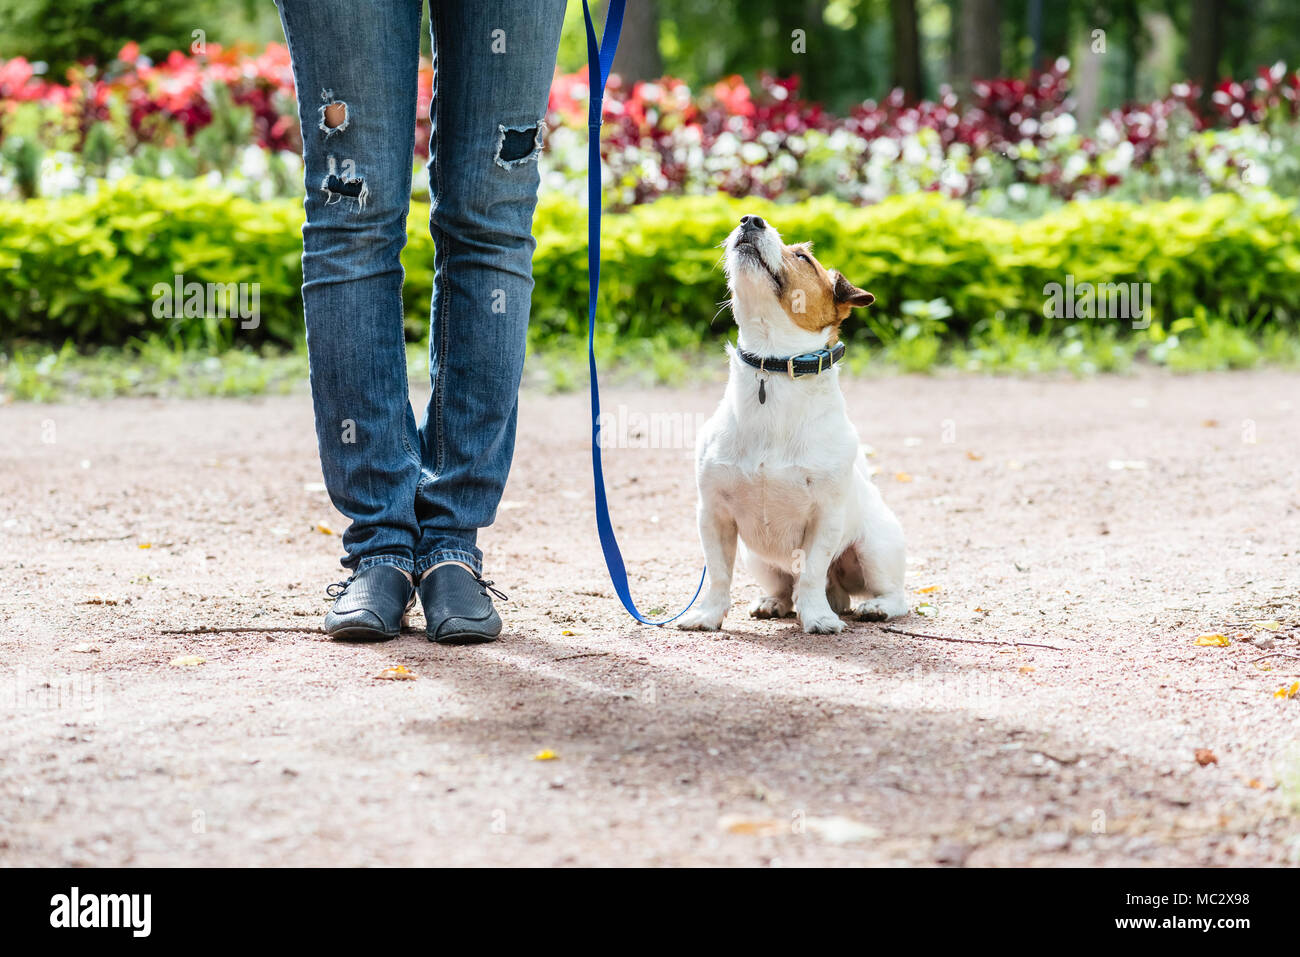 Good Citizen Dog Training: obedient dog training to walk on leash with owner - Stock Image